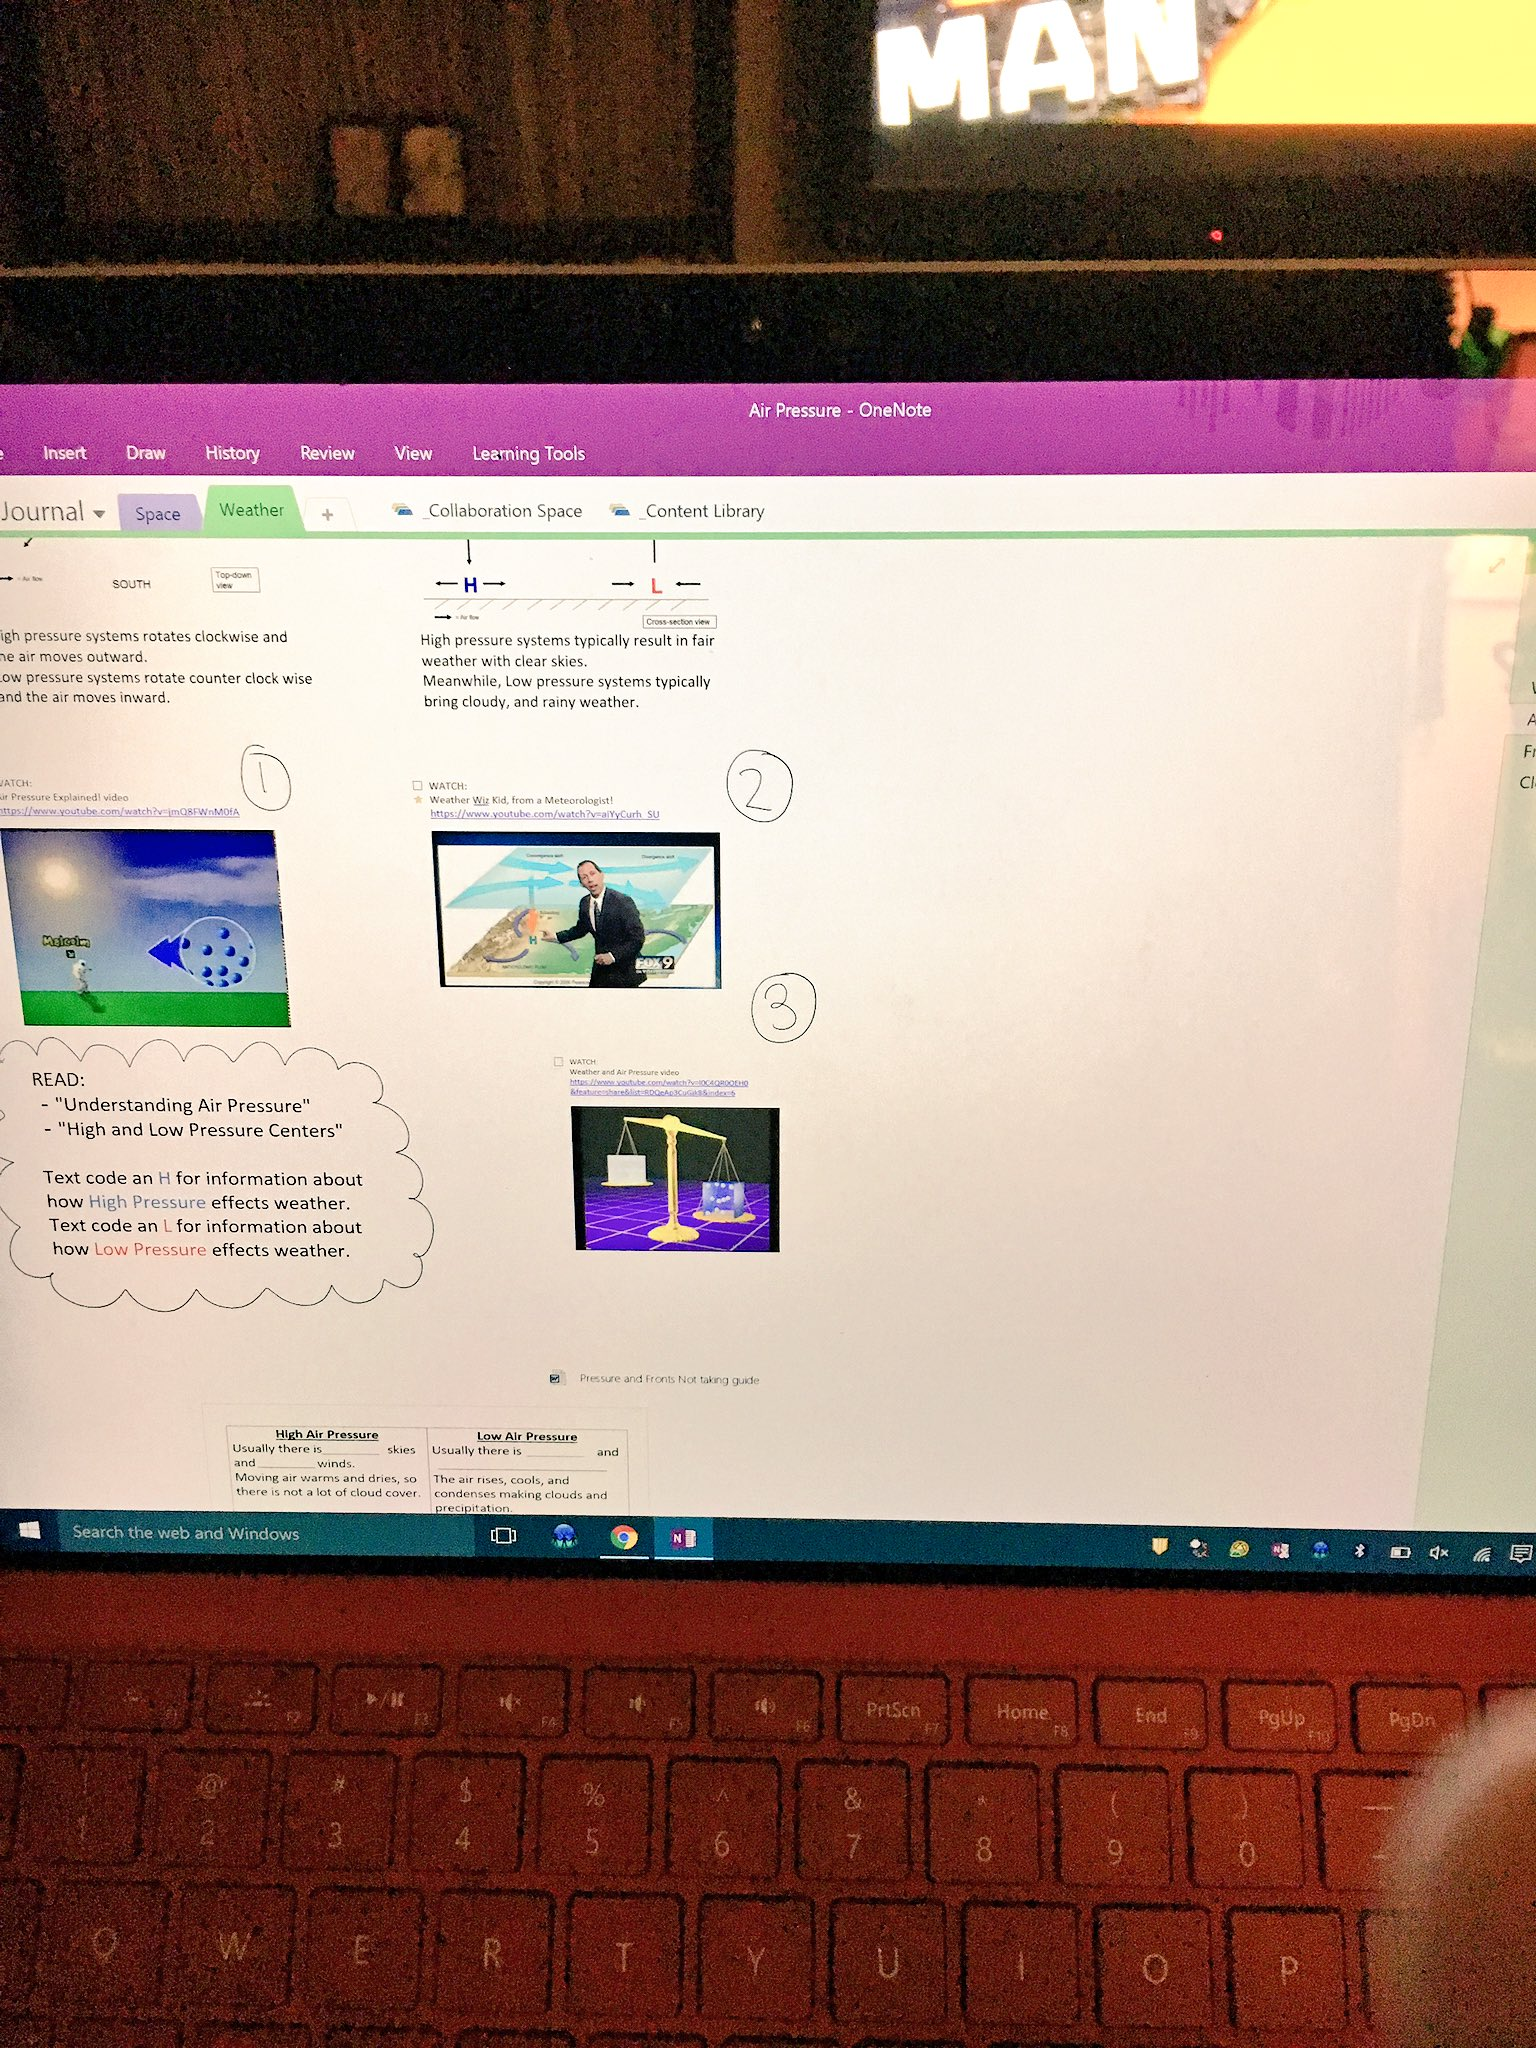 While waiting for #fledchat planning is happening on our OneNote ClassNotebook! #OneNoteQ #fledchat #hcpsteach https://t.co/pLlu1xfvxL